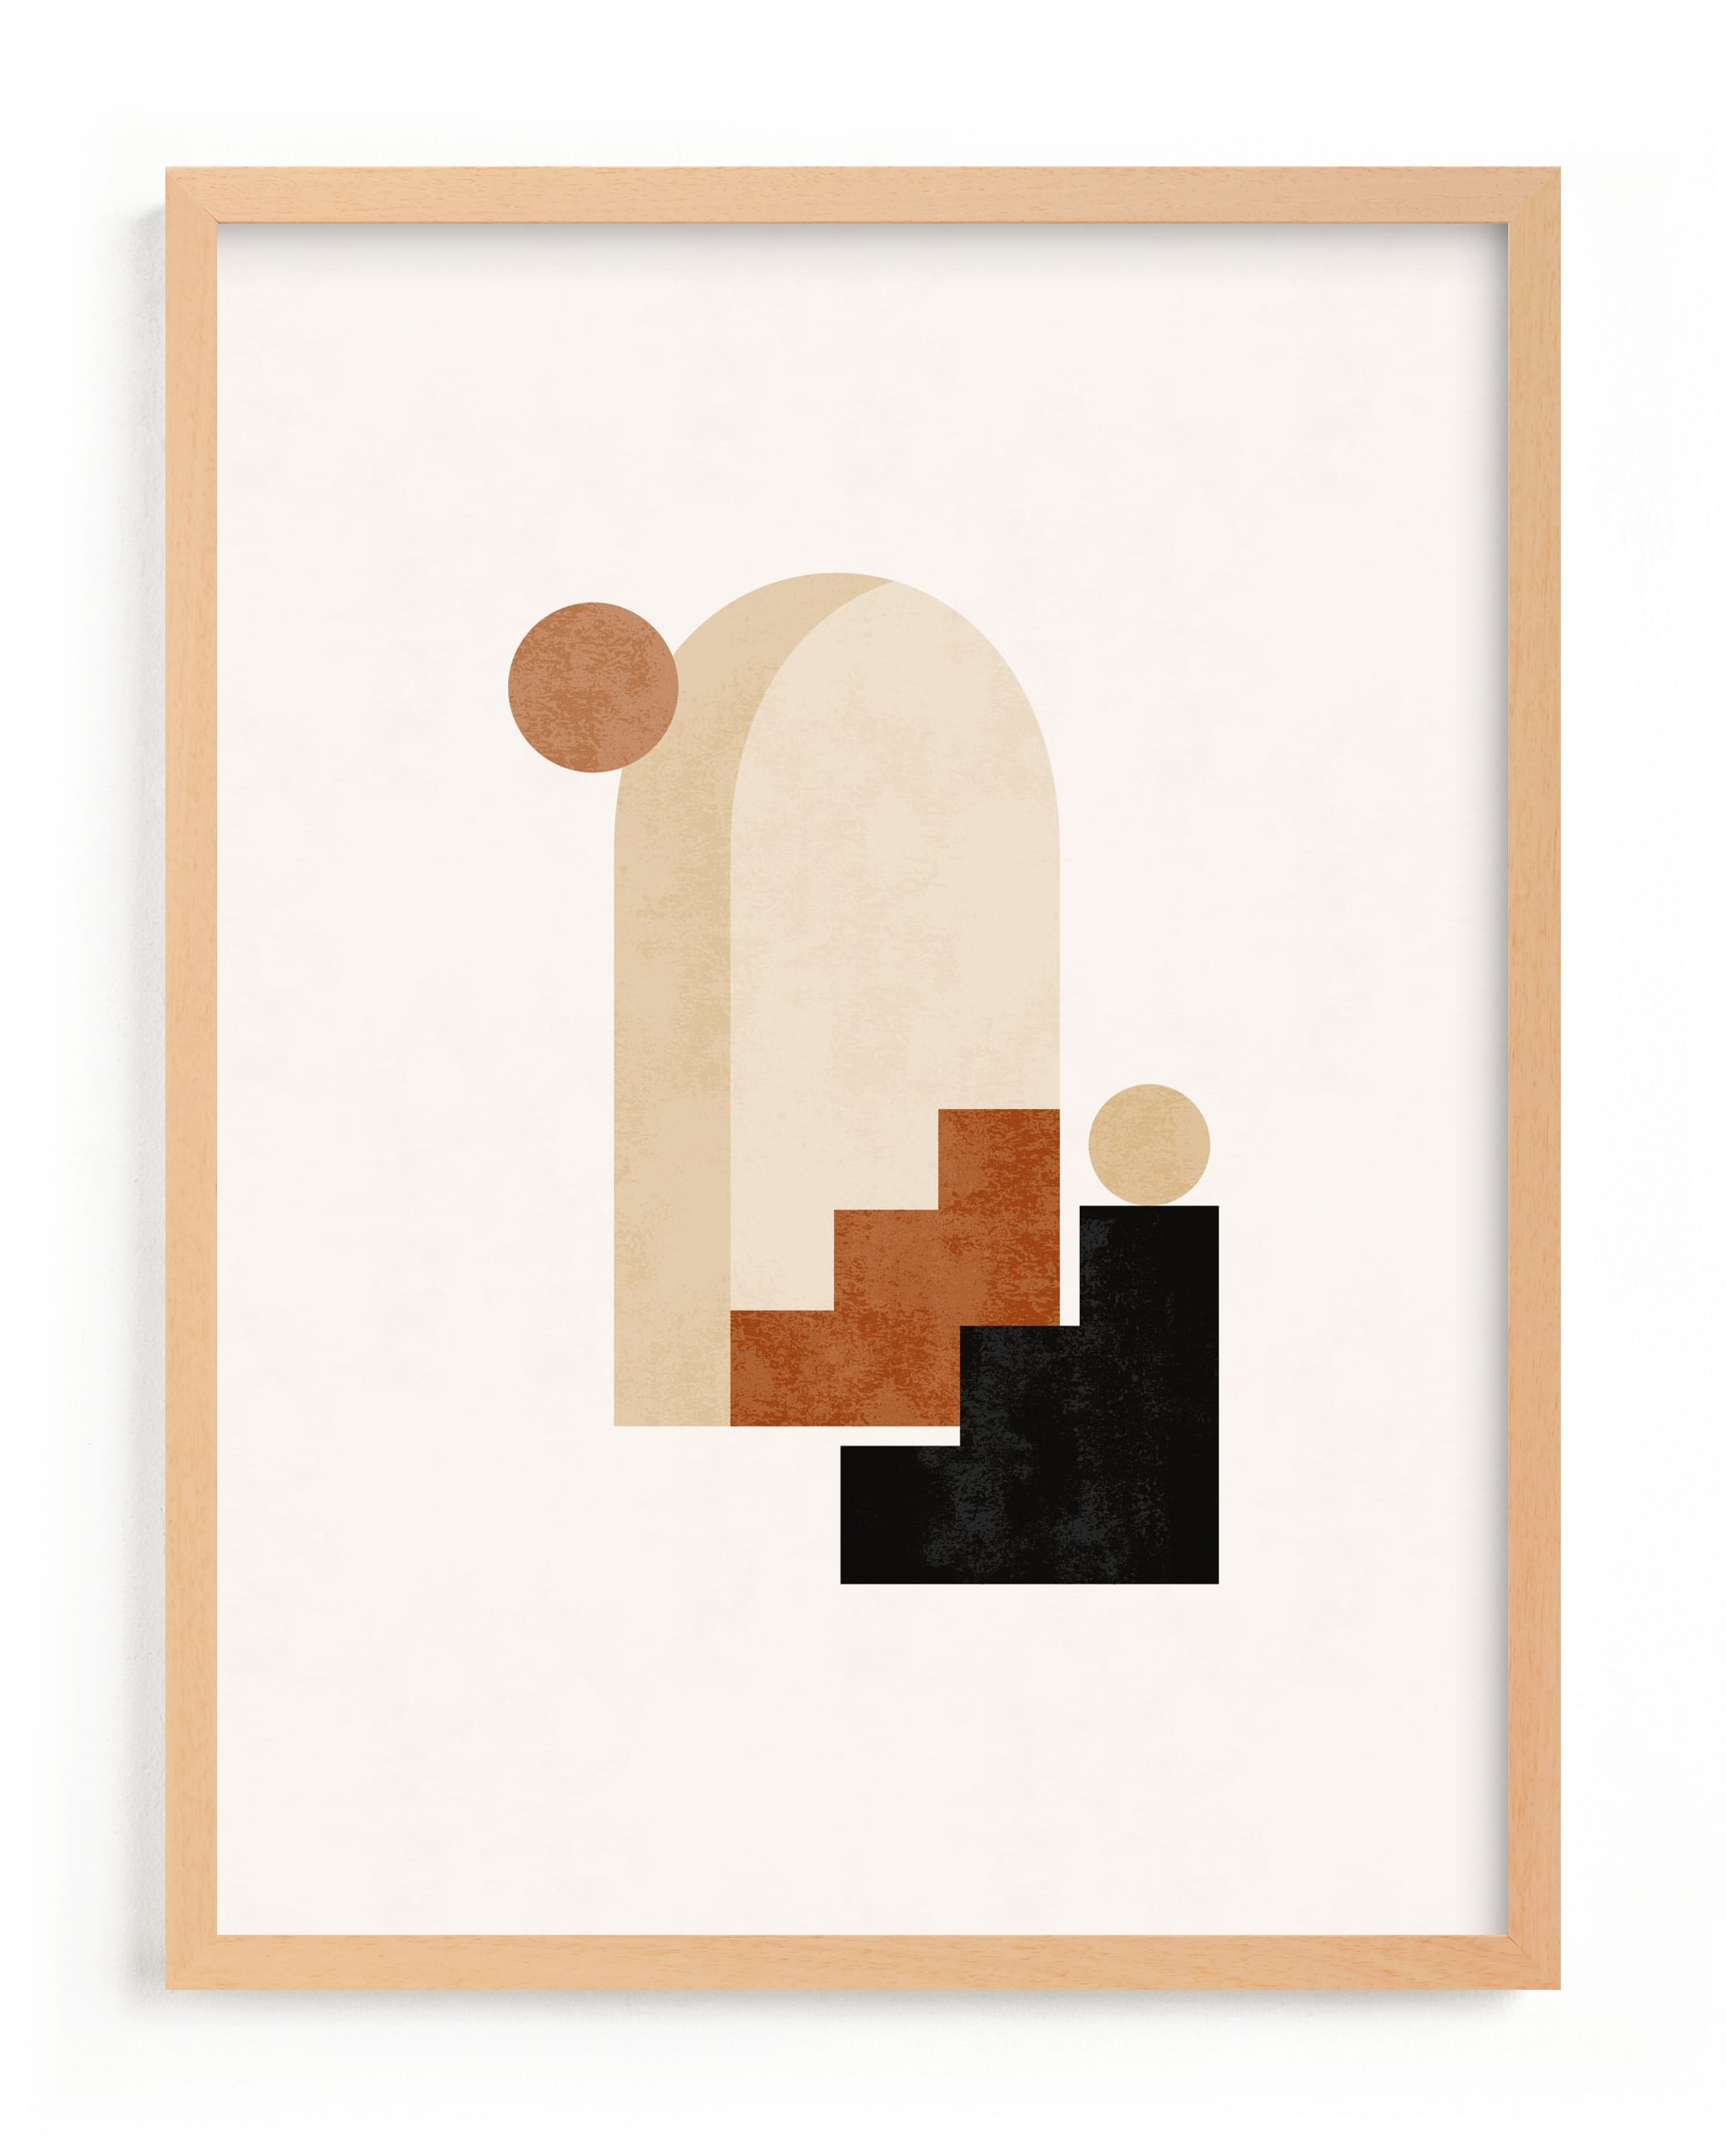 """""""Rustic Geometry 1"""" - Limited Edition Art Print by Iveta Angelova in beautiful frame options and a variety of sizes."""